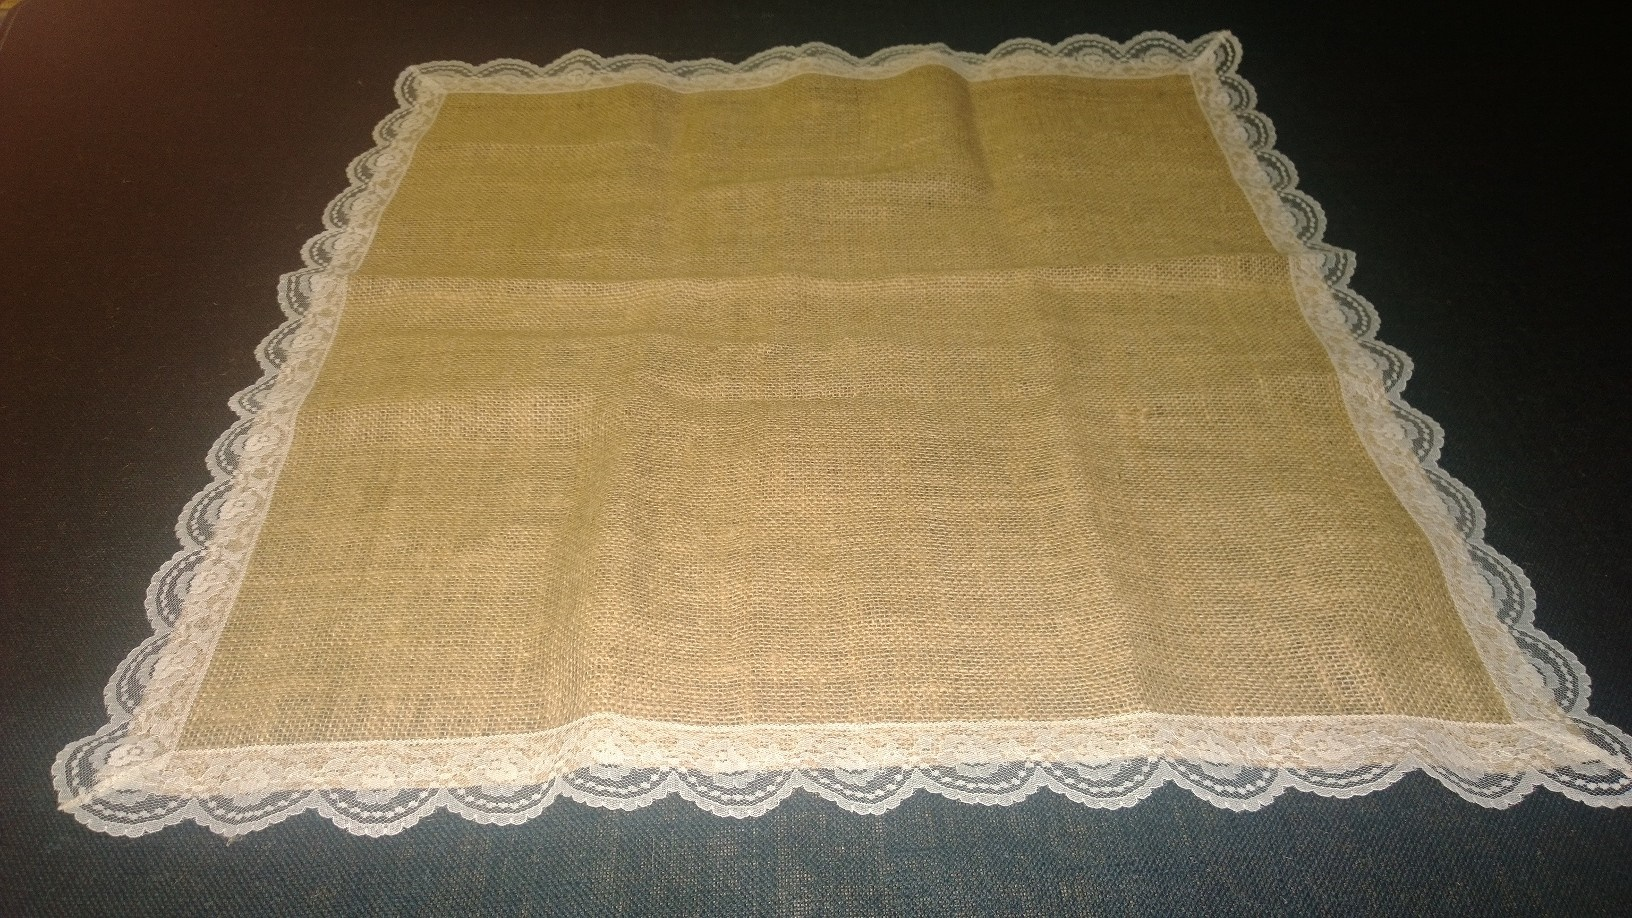 Burlap Square with Ivory Lace